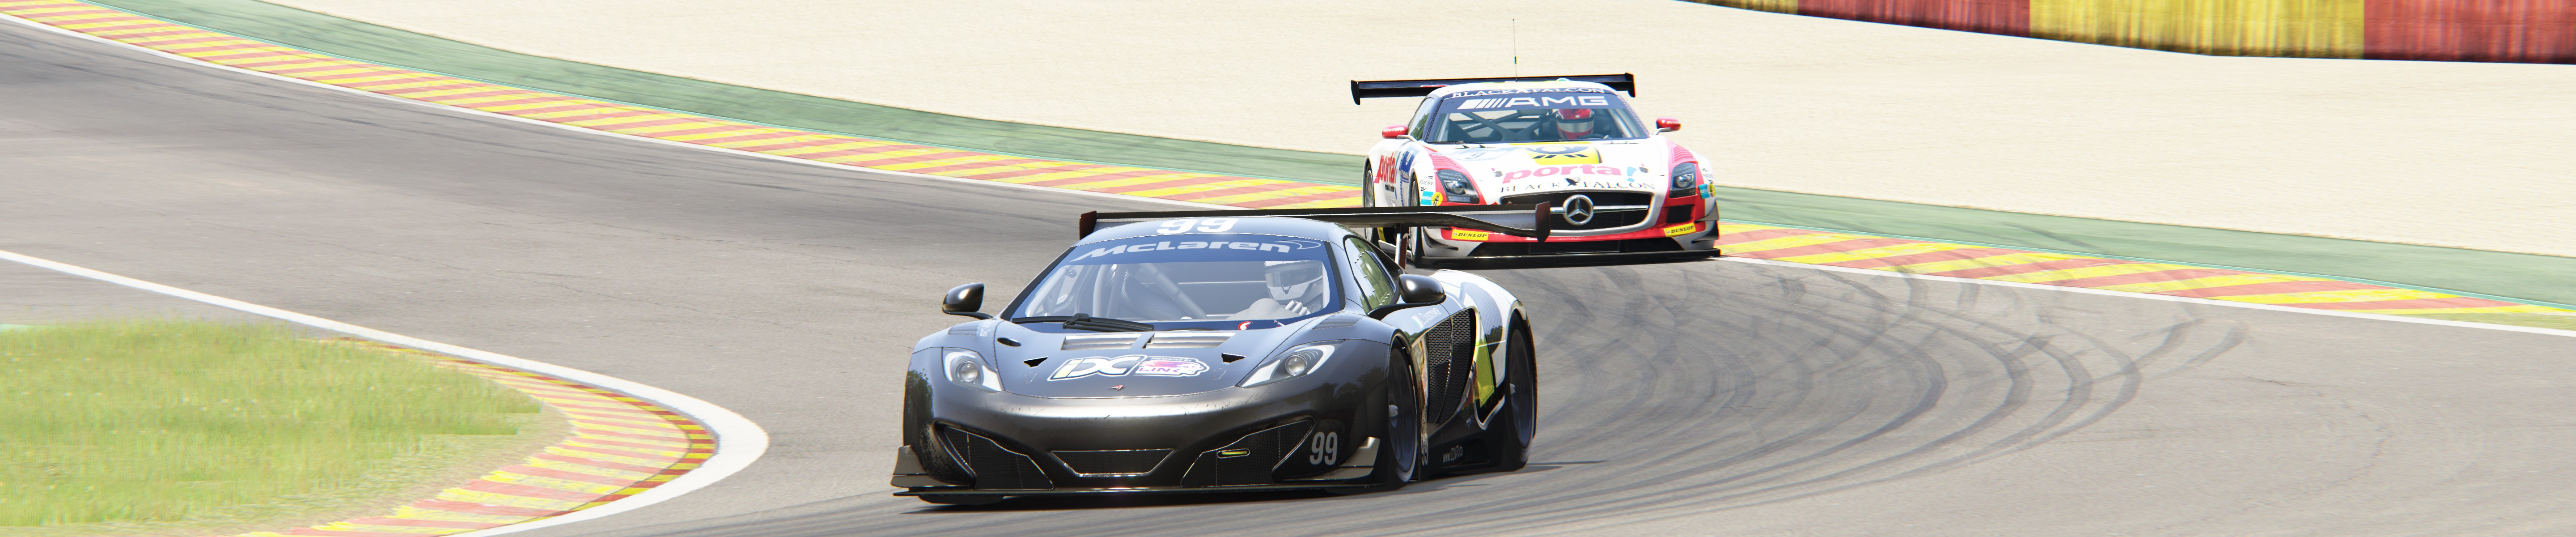 Screenshot_mclaren_mp412c_gt3_spa_1-2-117-16-33-51